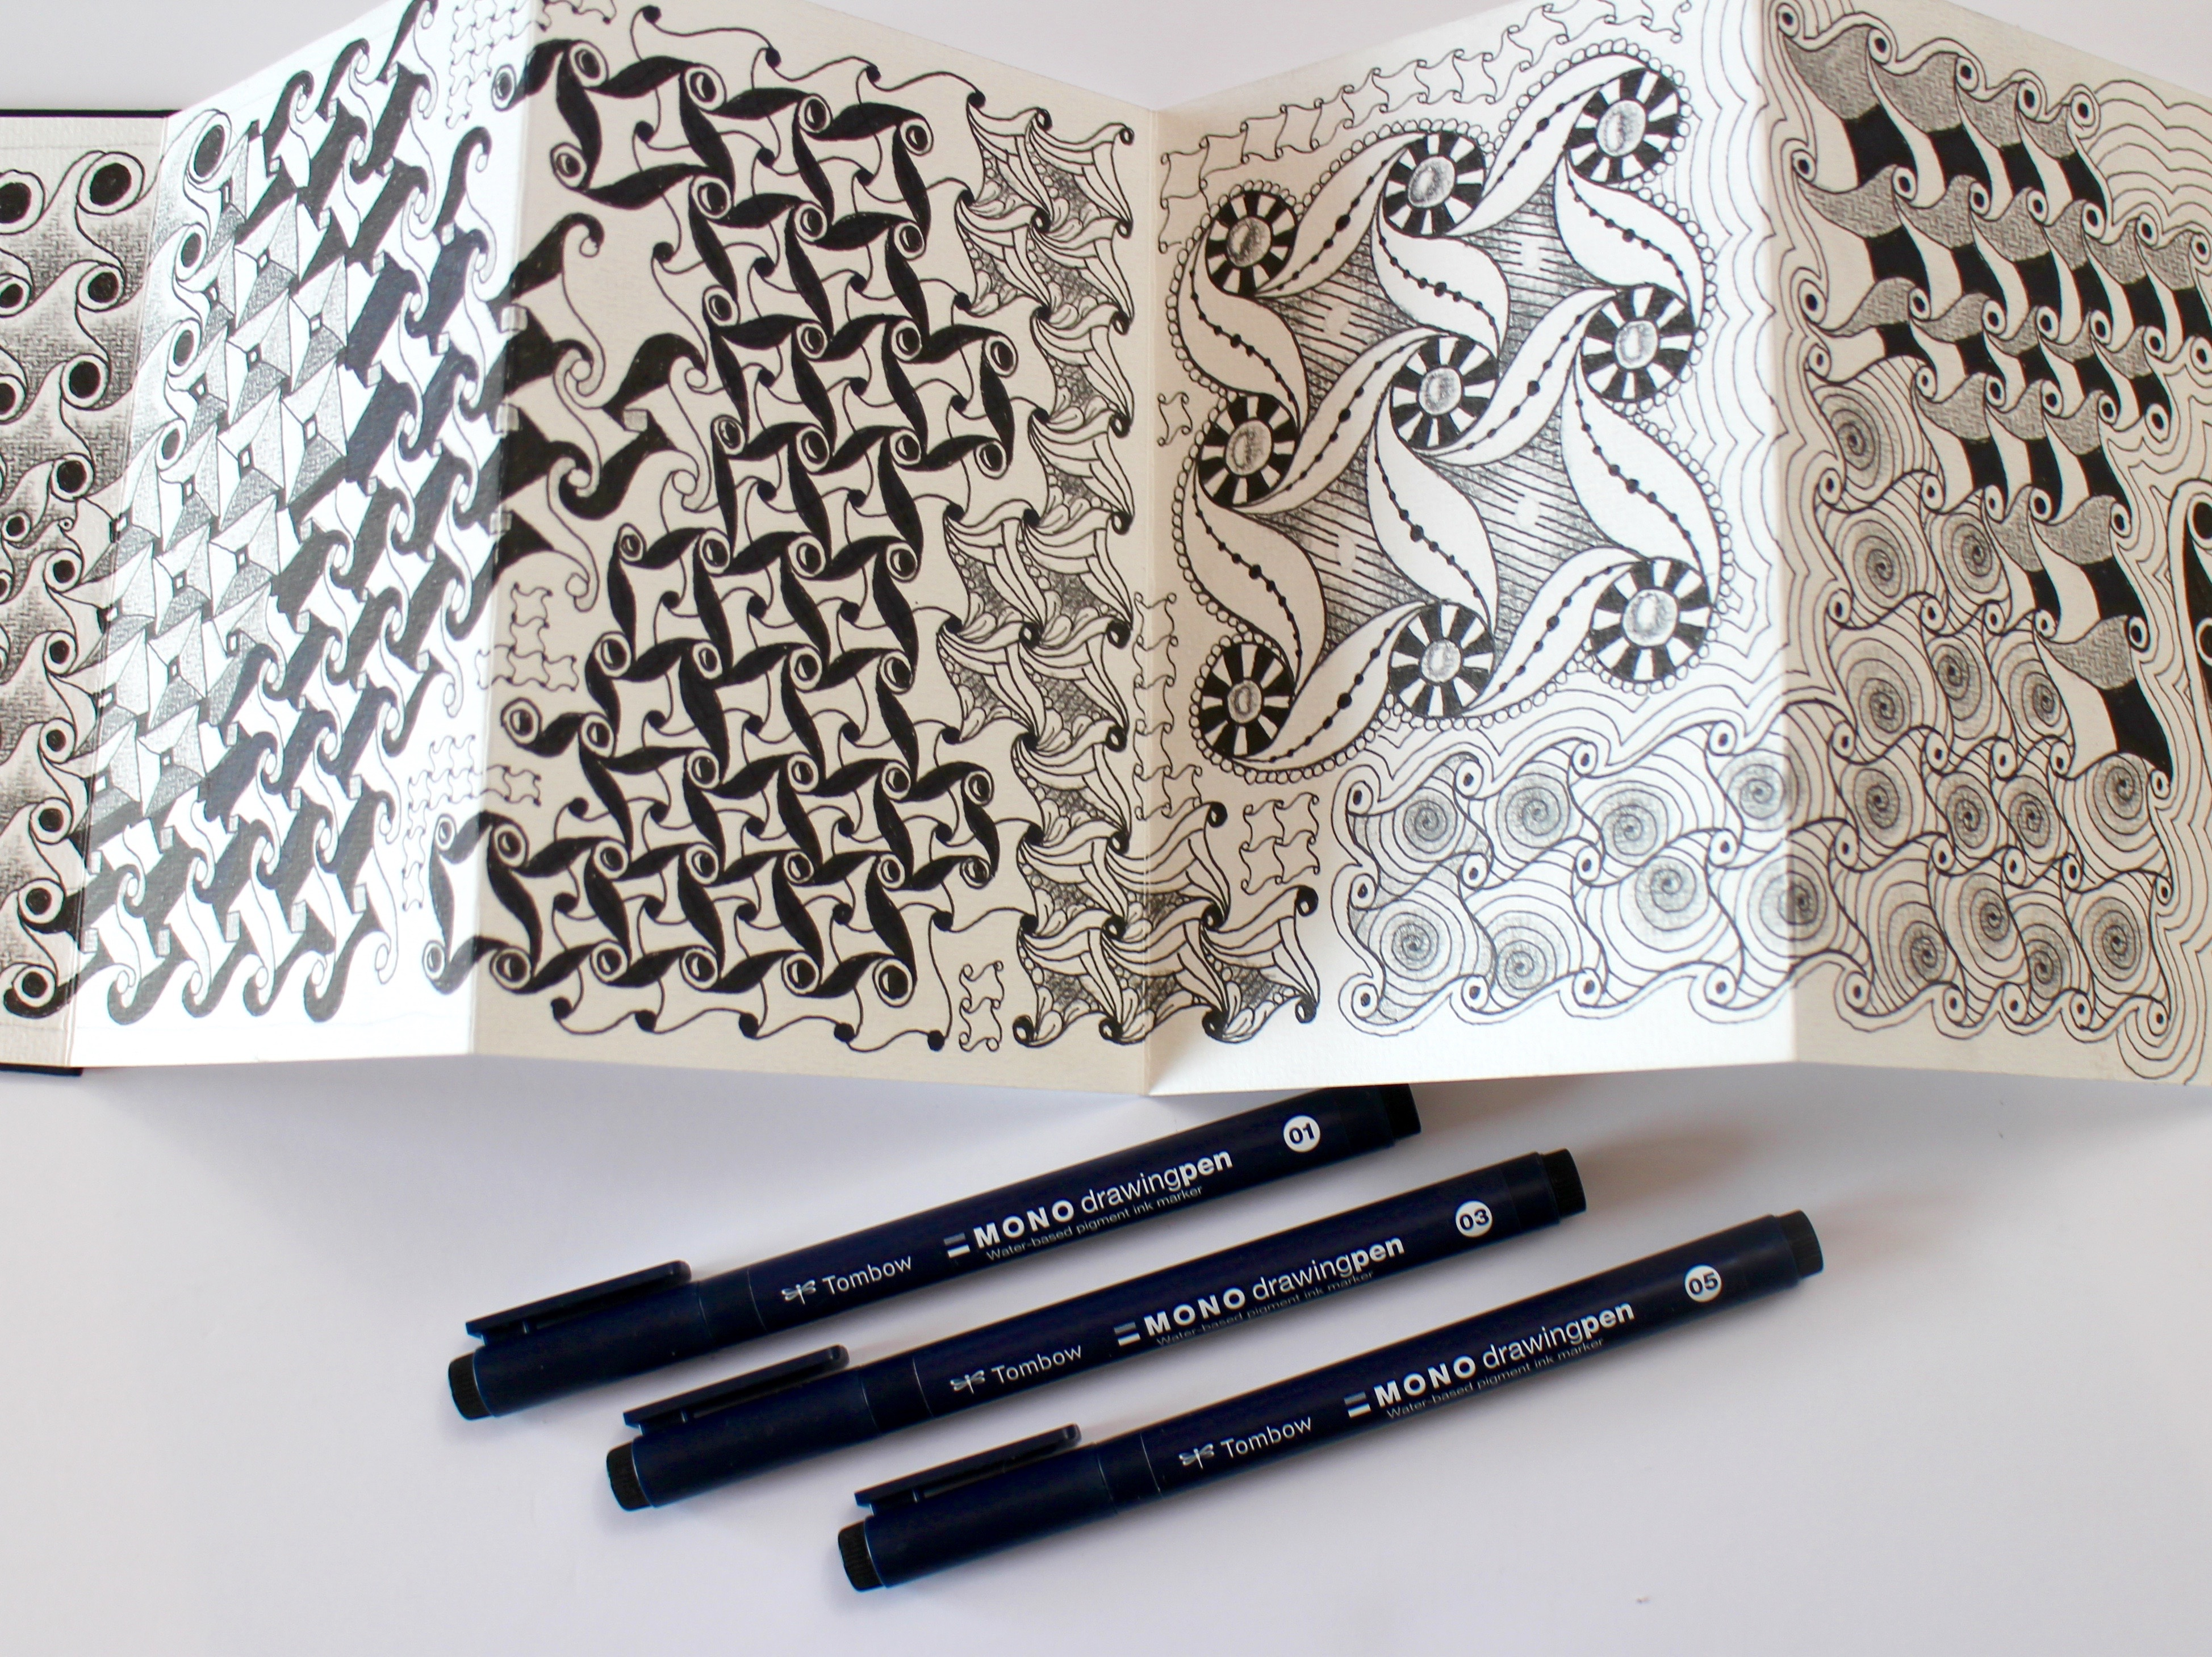 @mariebrowning New Drawing Pens from Tombow! Great for Zentangle Enthusiasts!